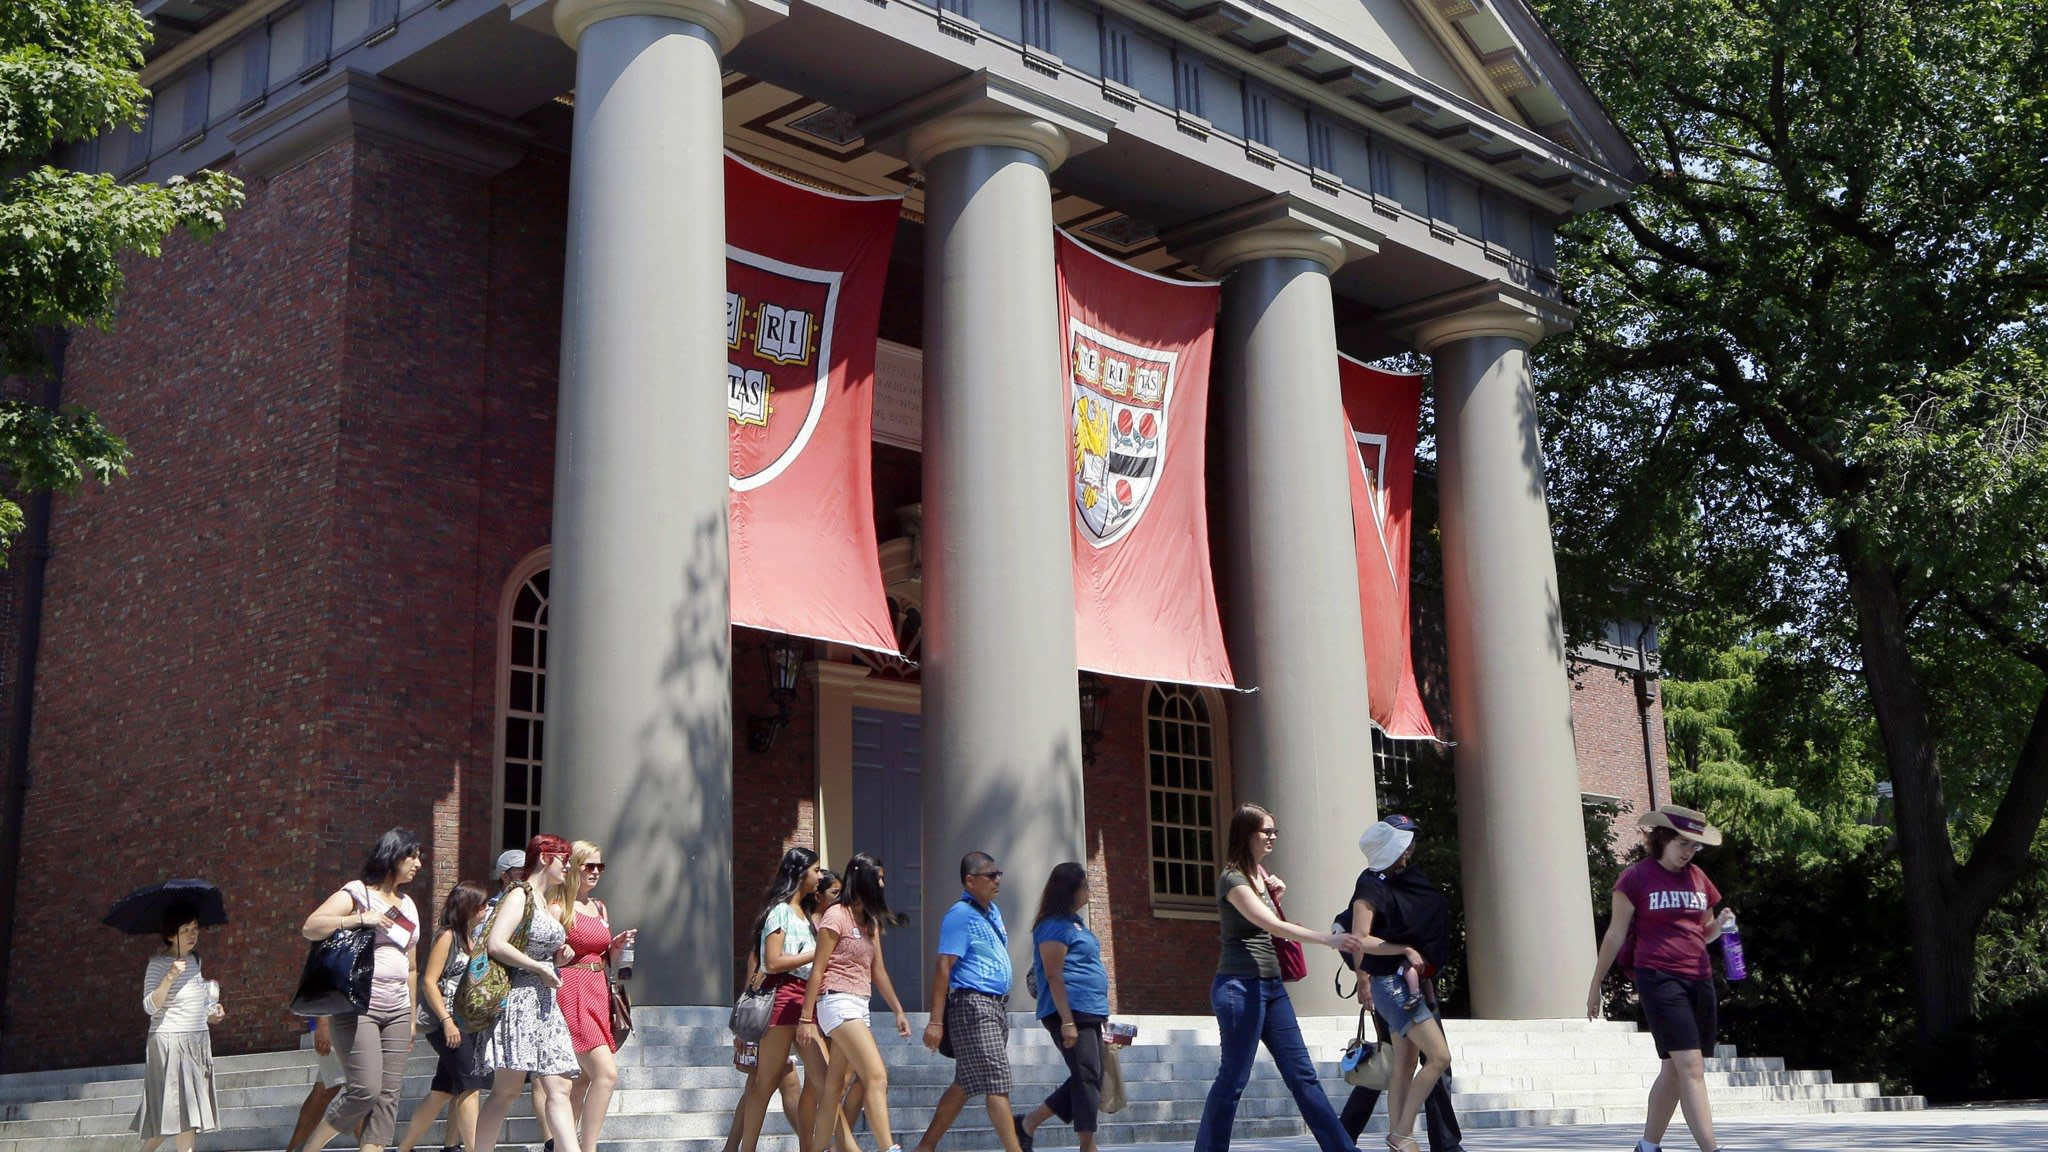 Asian-Americans 'disadvantaged' in Harvard admissions